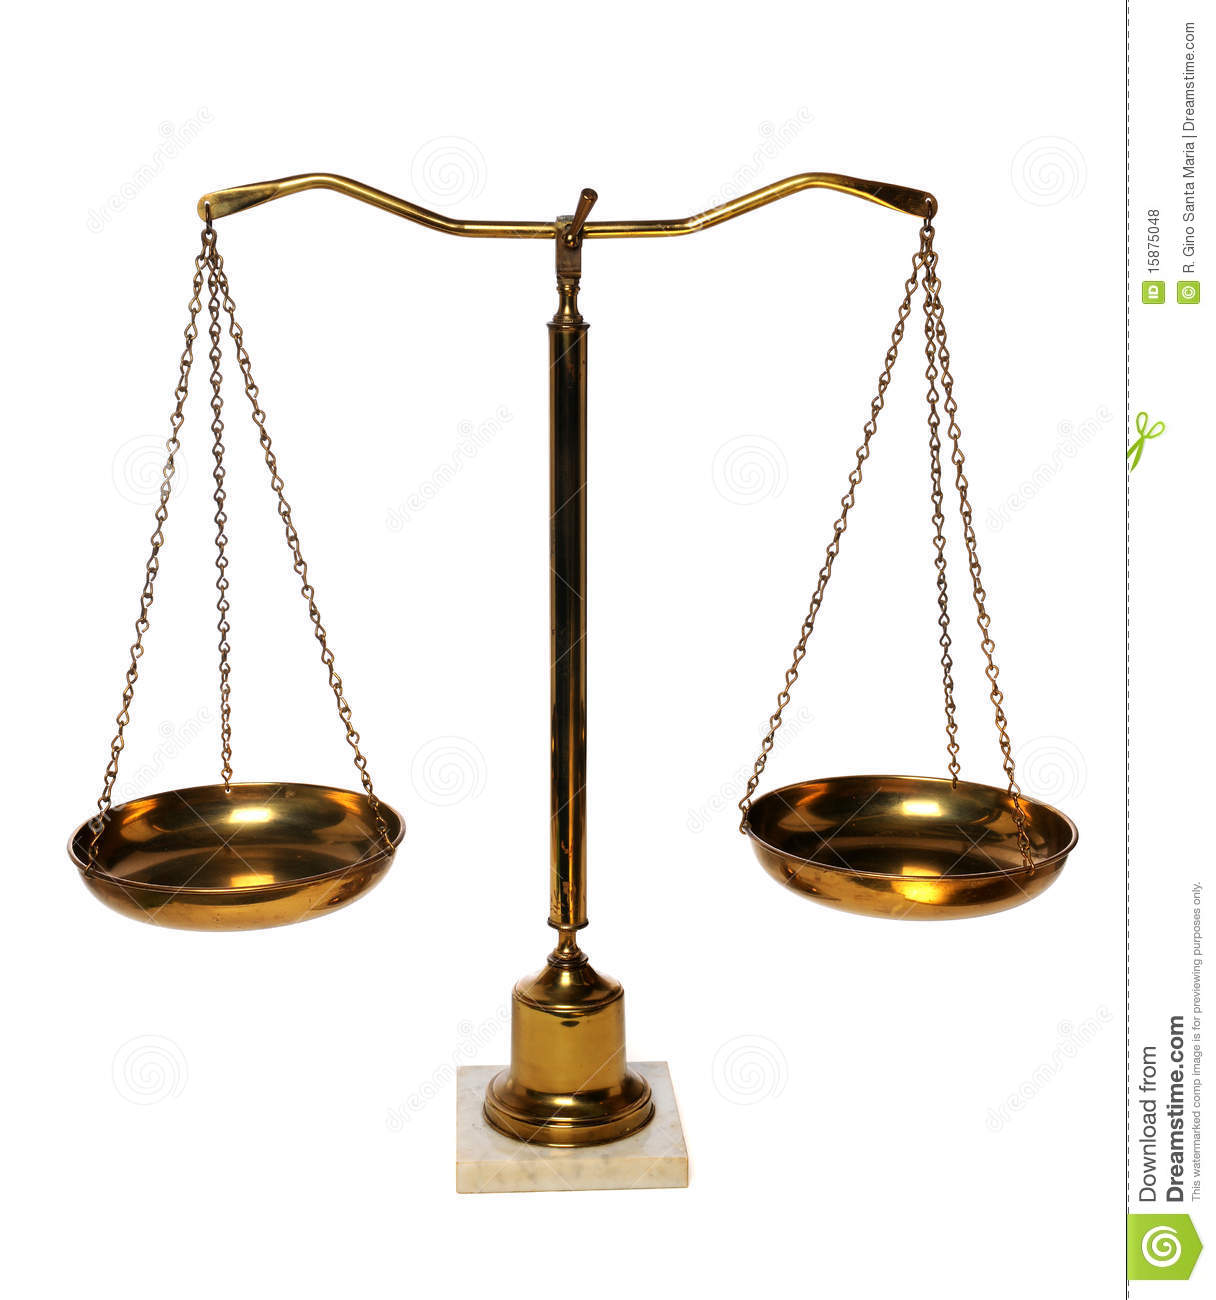 Weight Scales Royalty Free Stock Photos - Image: 15875048